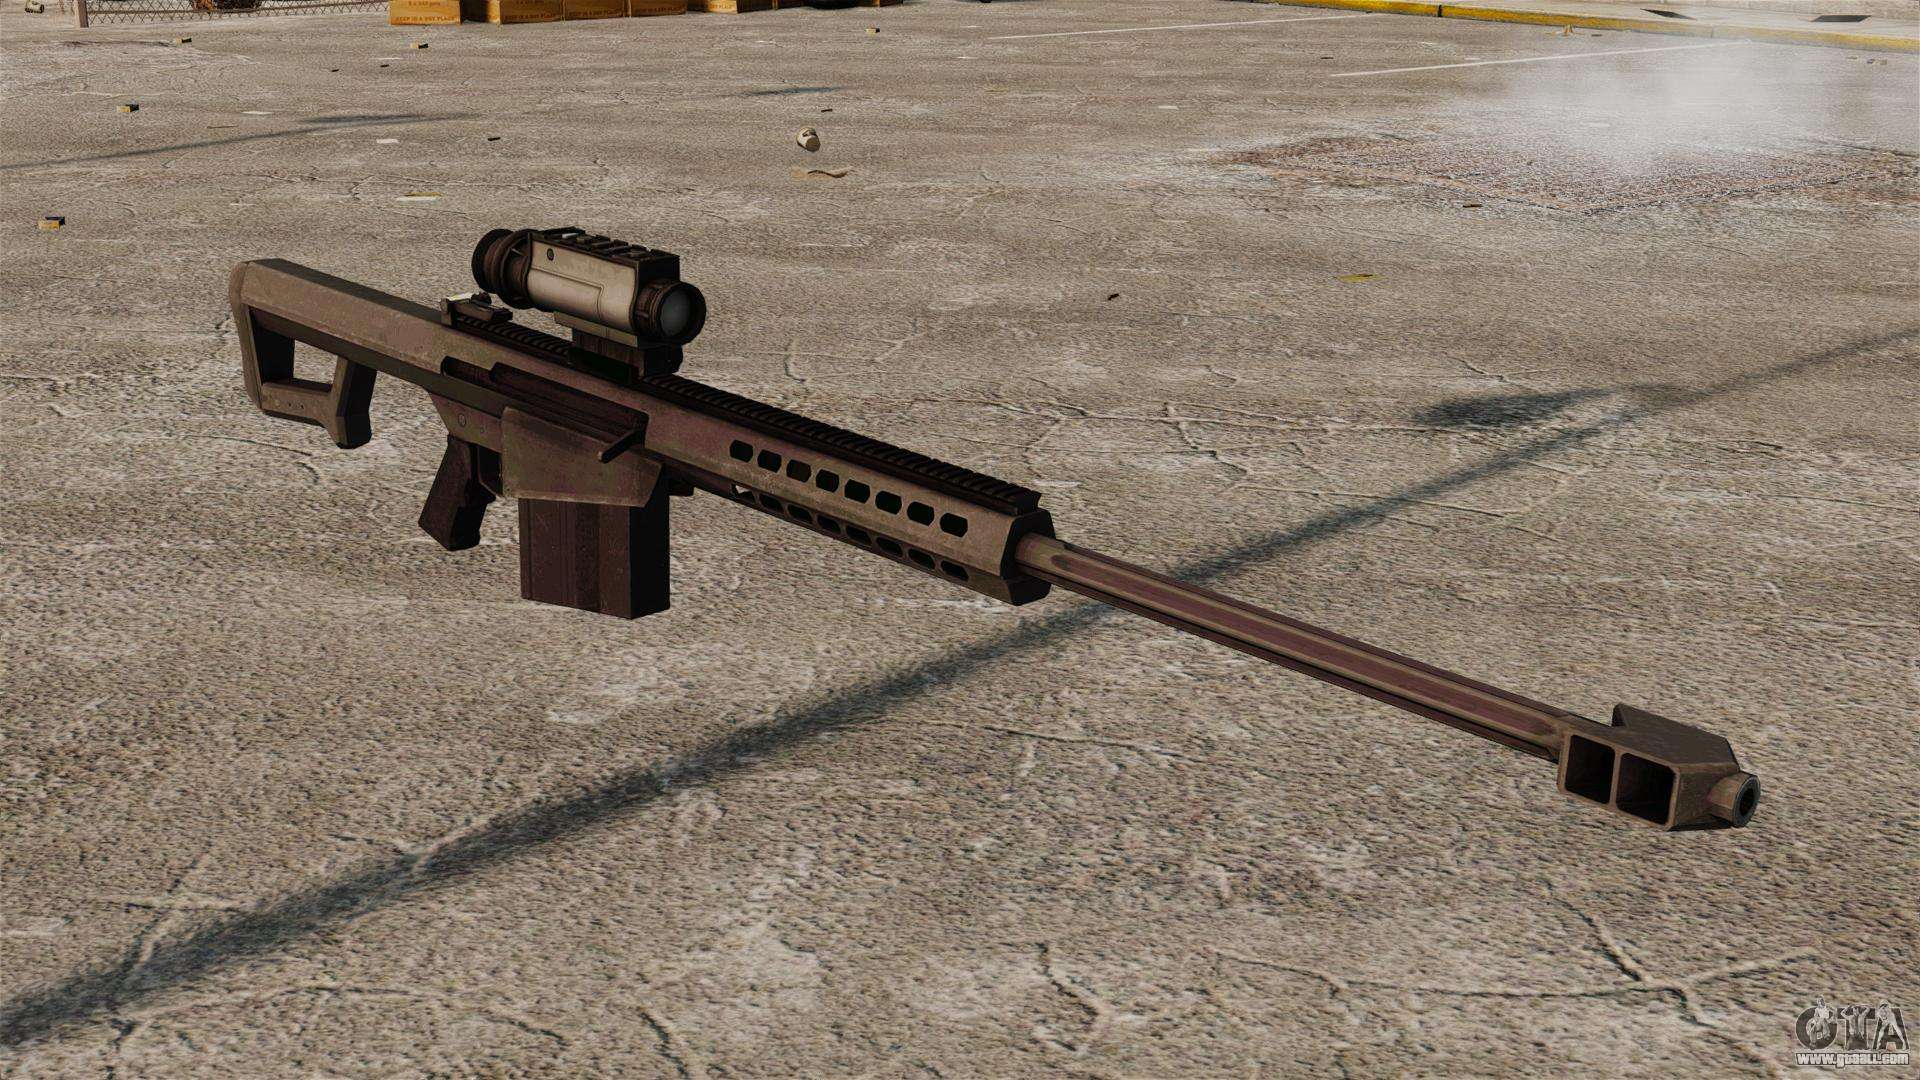 m107 sniper rifle - photo #12